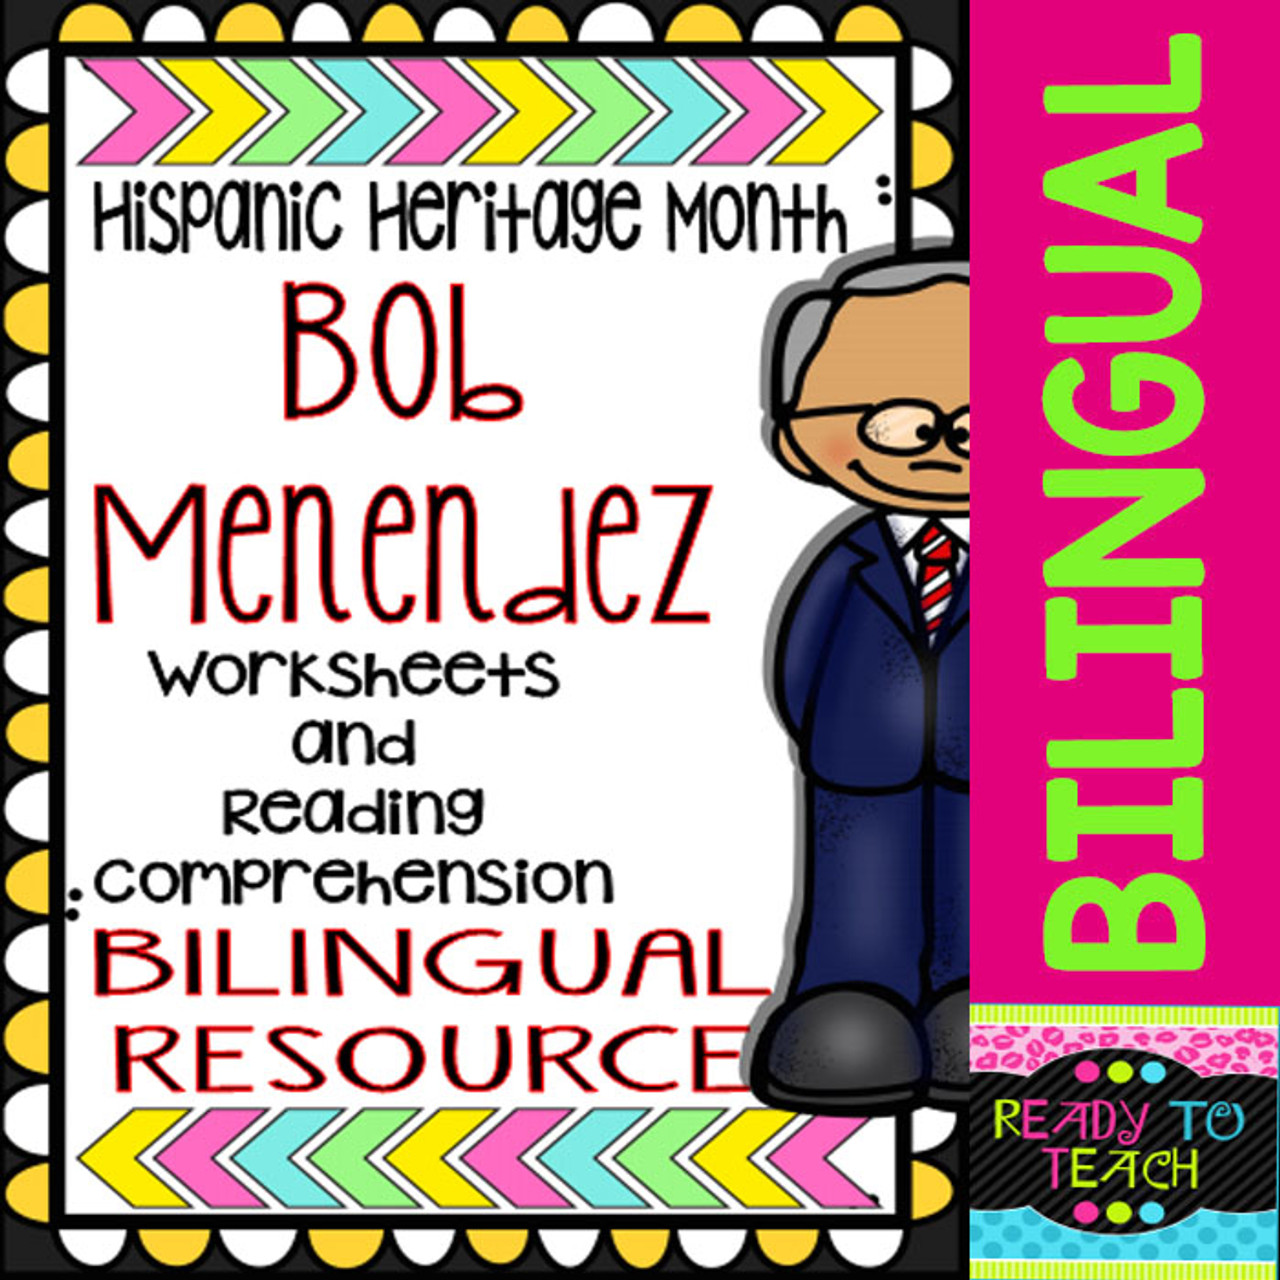 hight resolution of Hispanic Heritage Month - Bob Menendez - Worksheets and Readings (Bilingual)  - Amped Up Learning